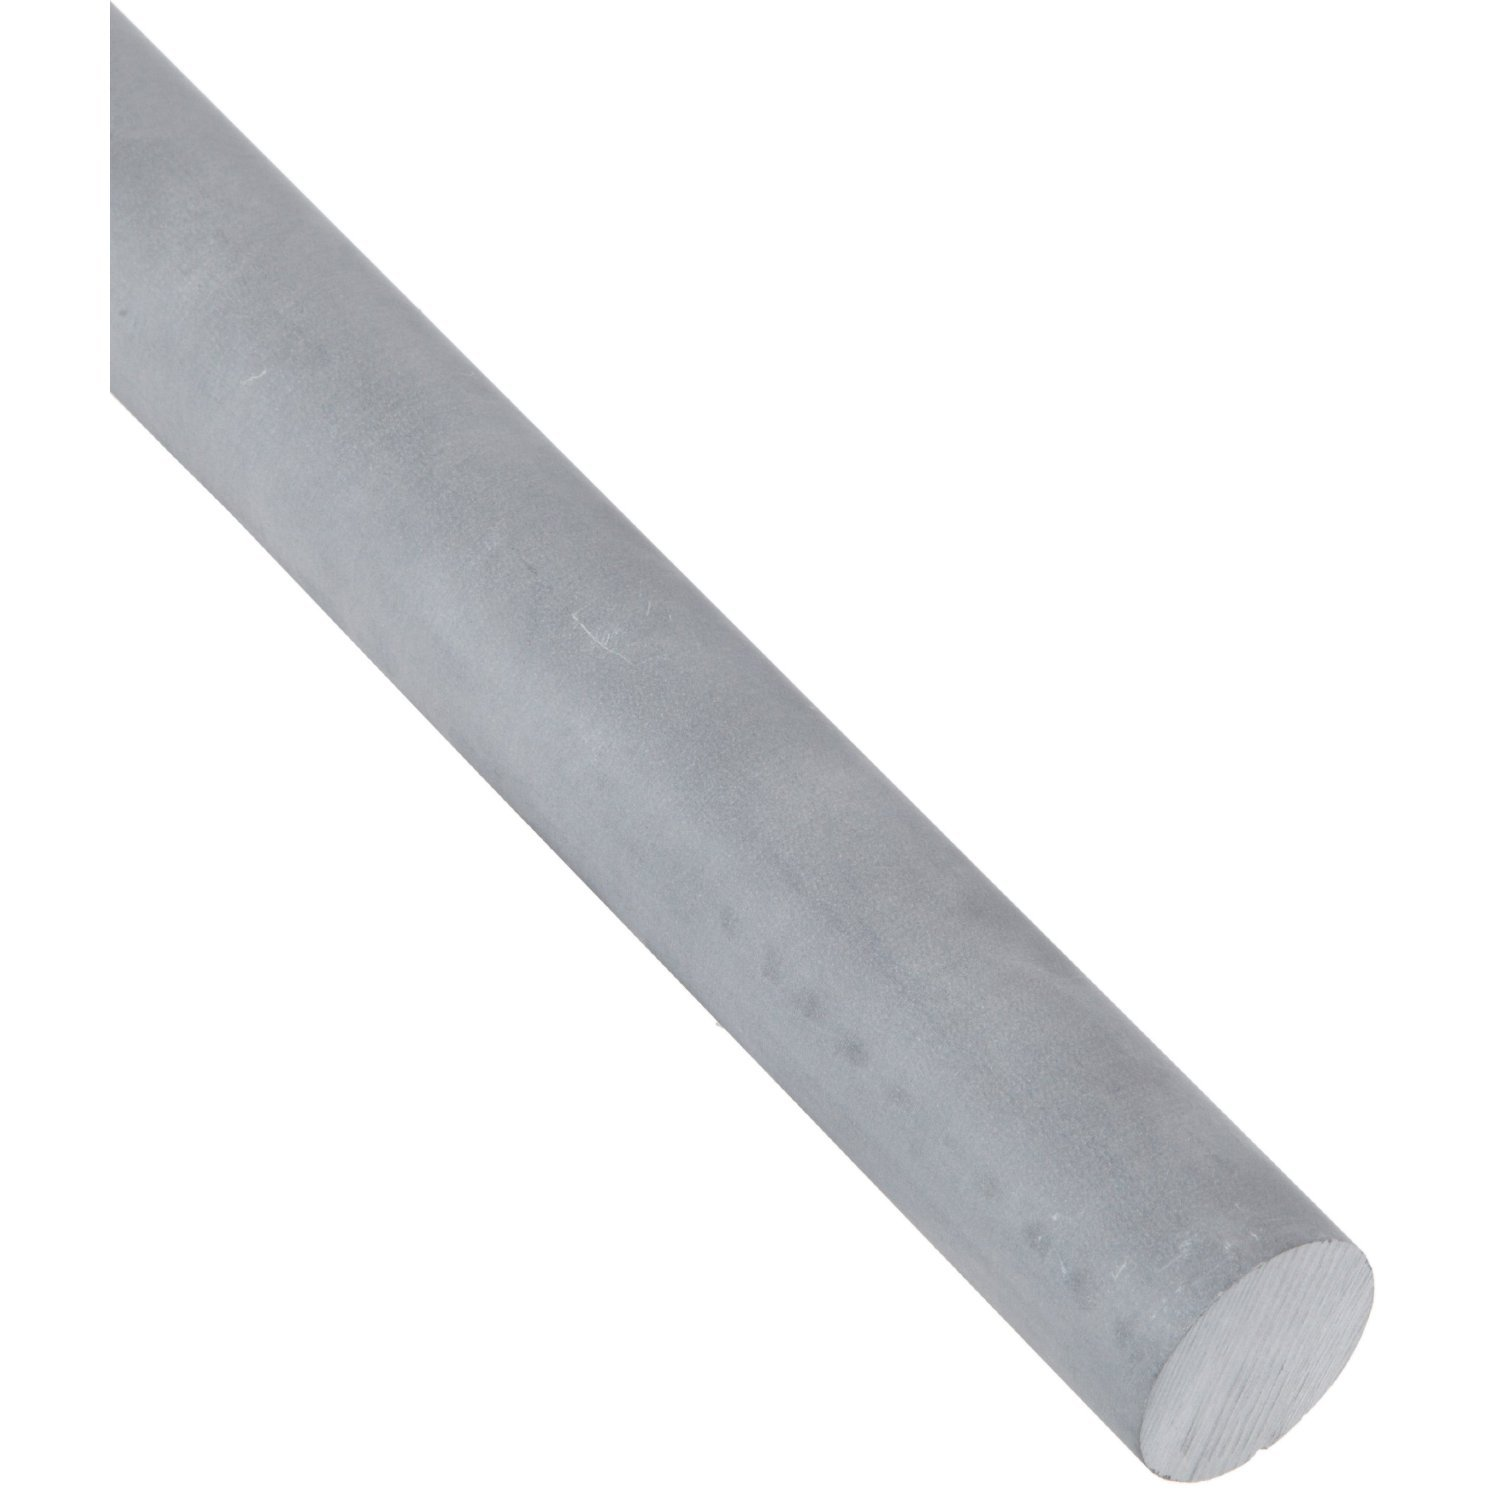 Lava, Alumina Silicate Ceramic, Rod, Opaque Gray, 1/8'' Diameter, 9'' Length